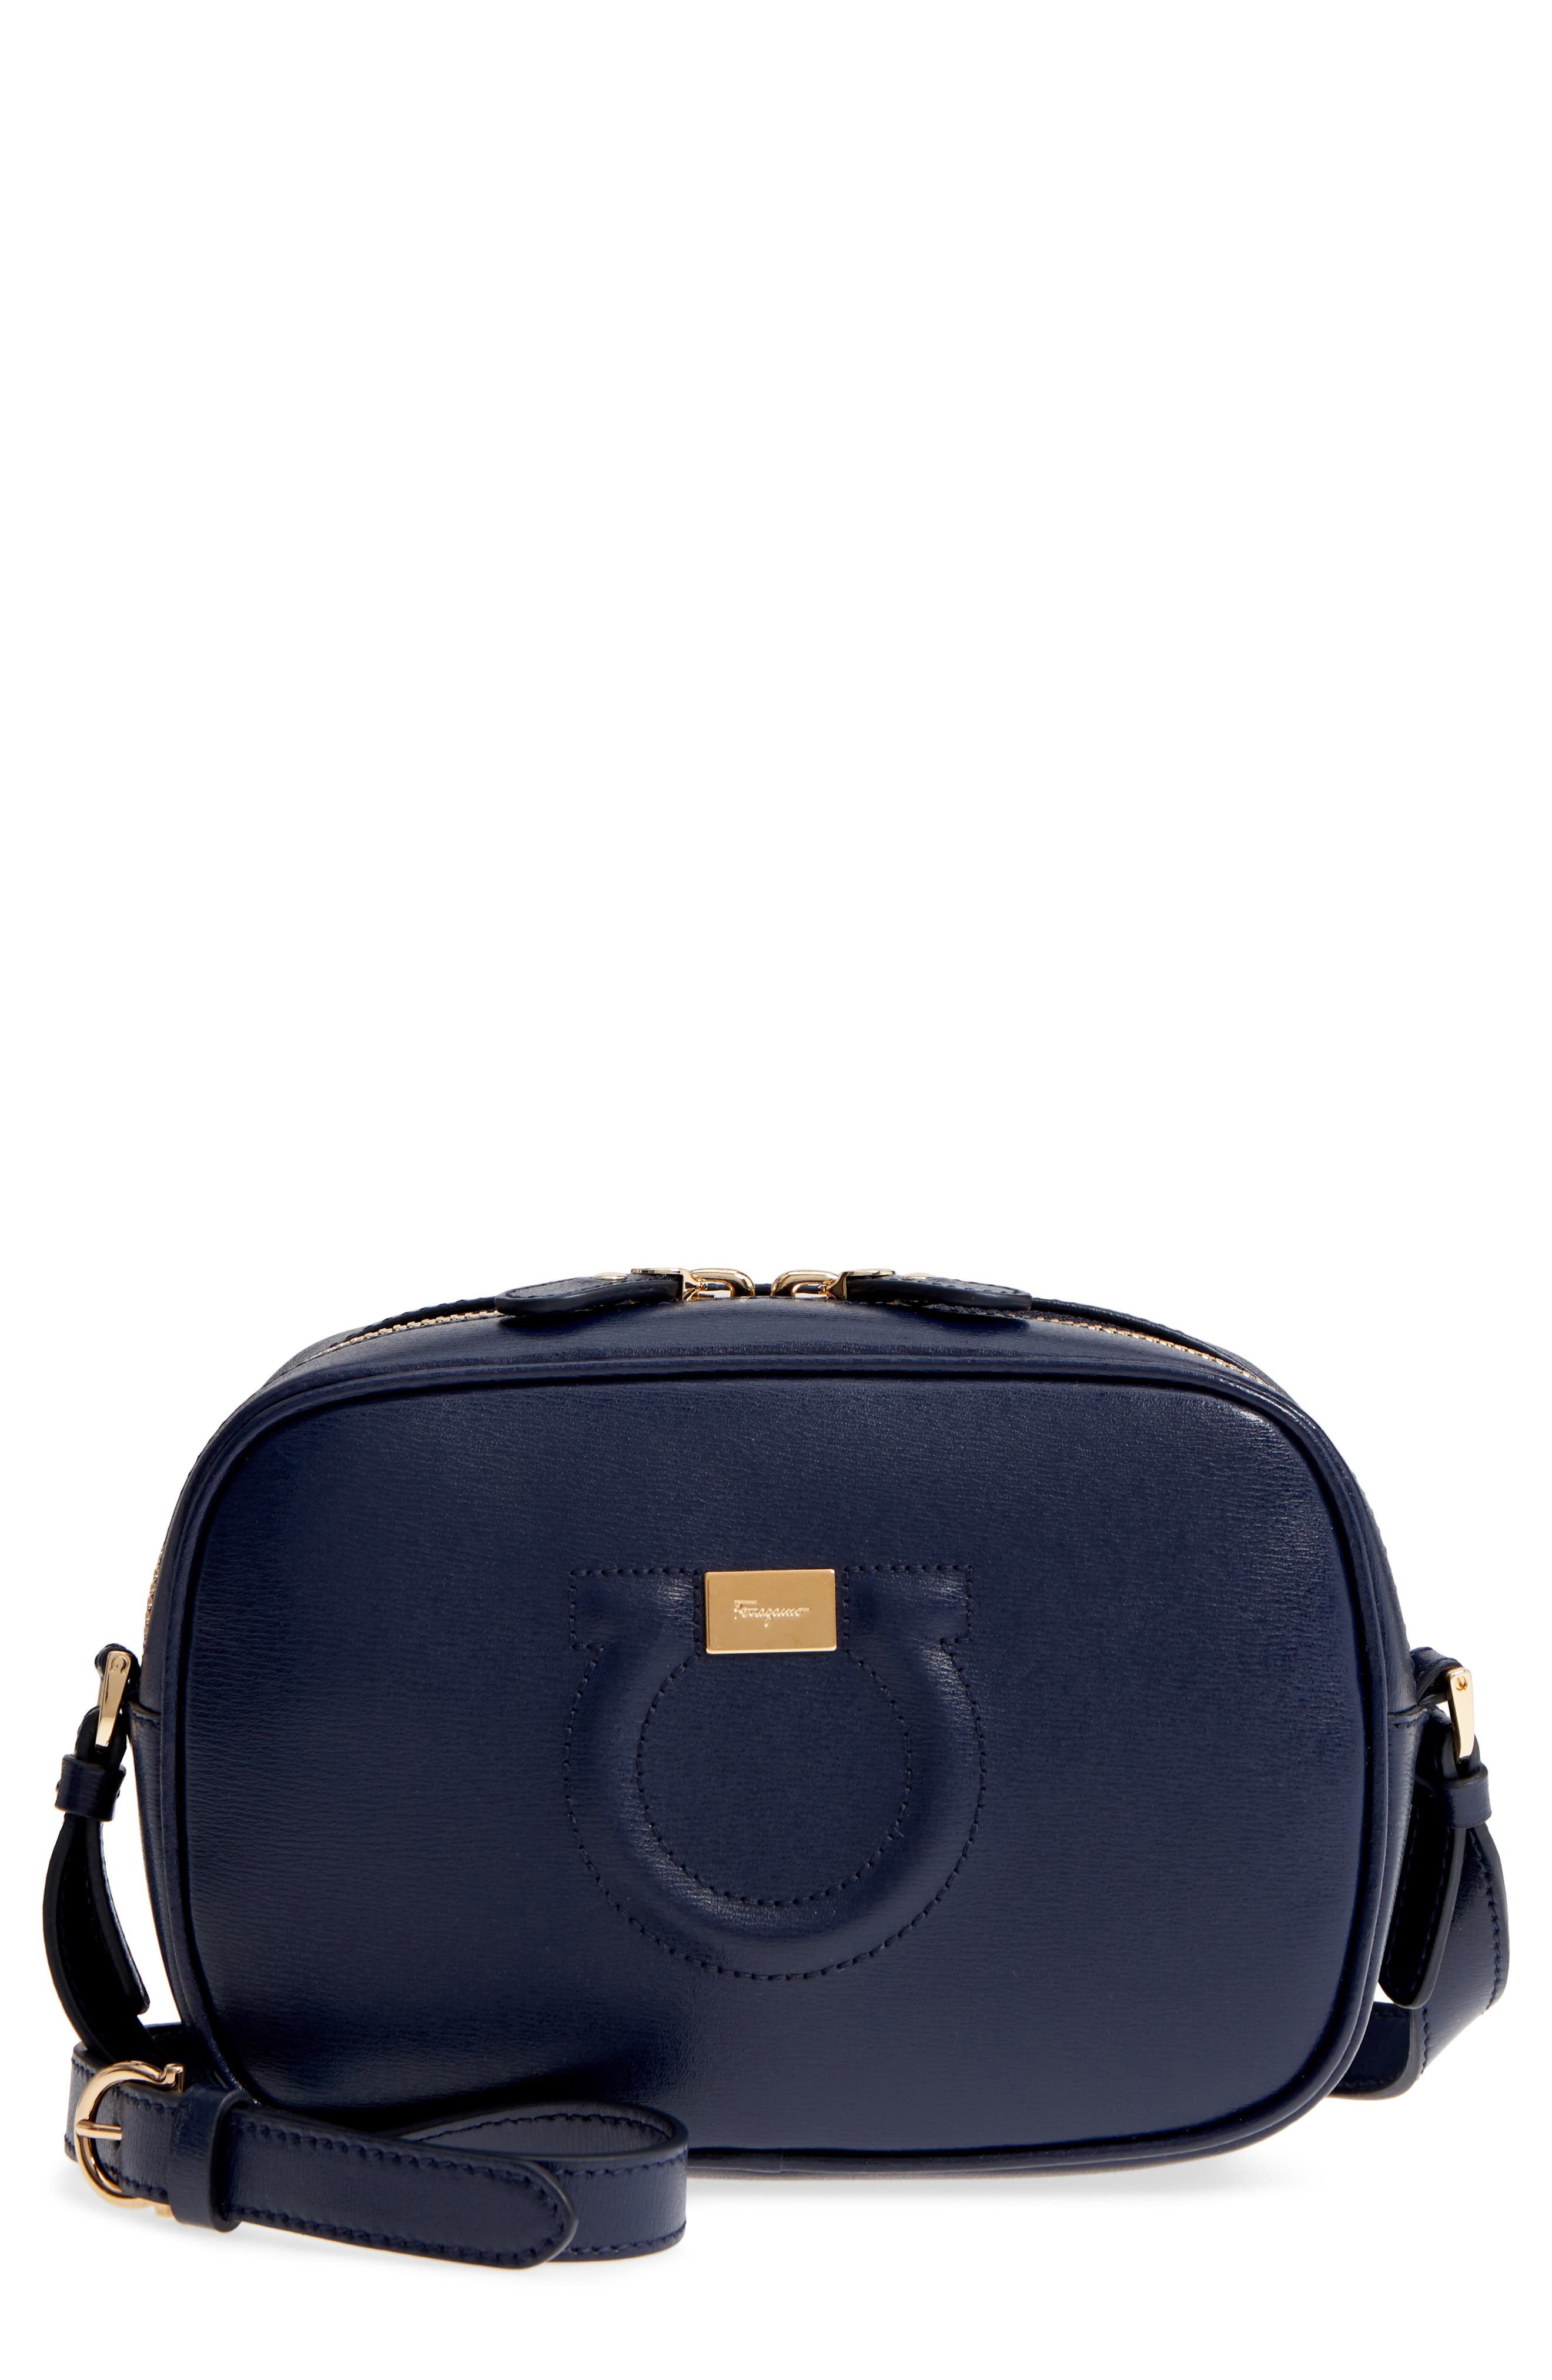 Gancio Metallic Leather Camera Bag,                             Main thumbnail 1, color,                             NAVY